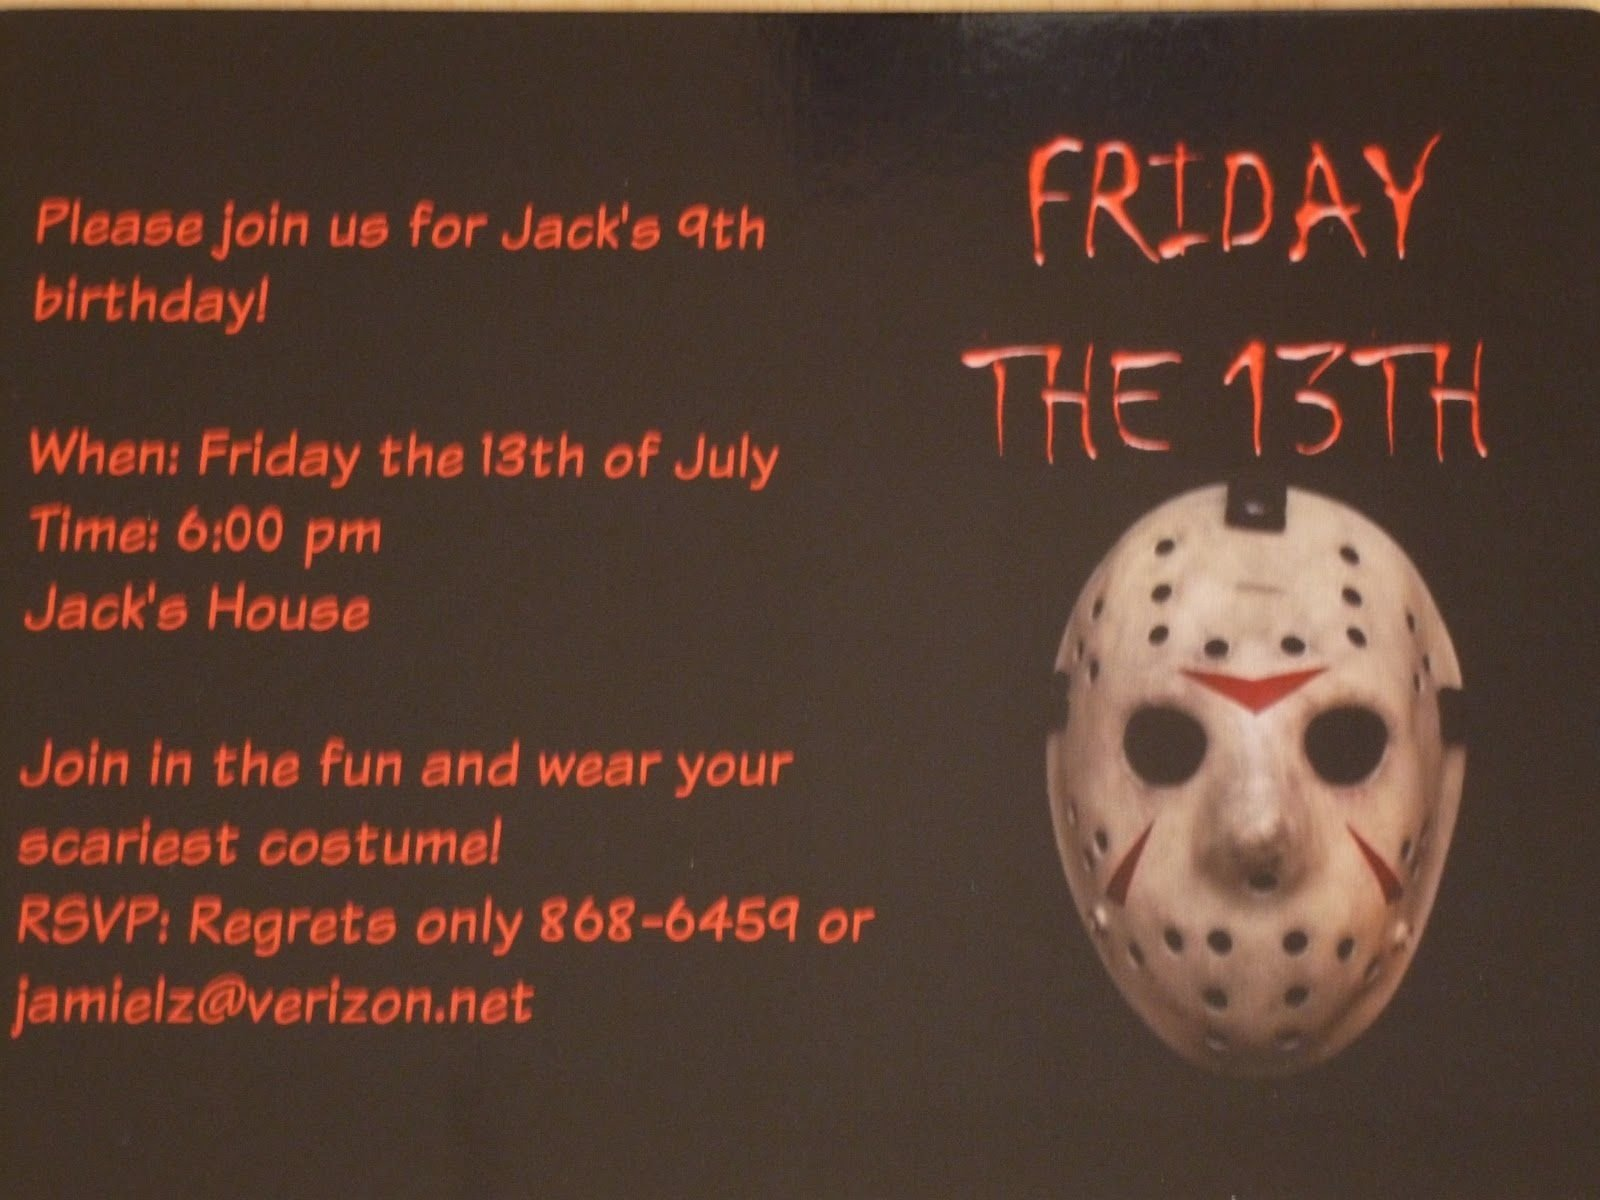 10 Unique Friday The 13Th Party Ideas download 13th birthday party invitation ideas free printable 2020